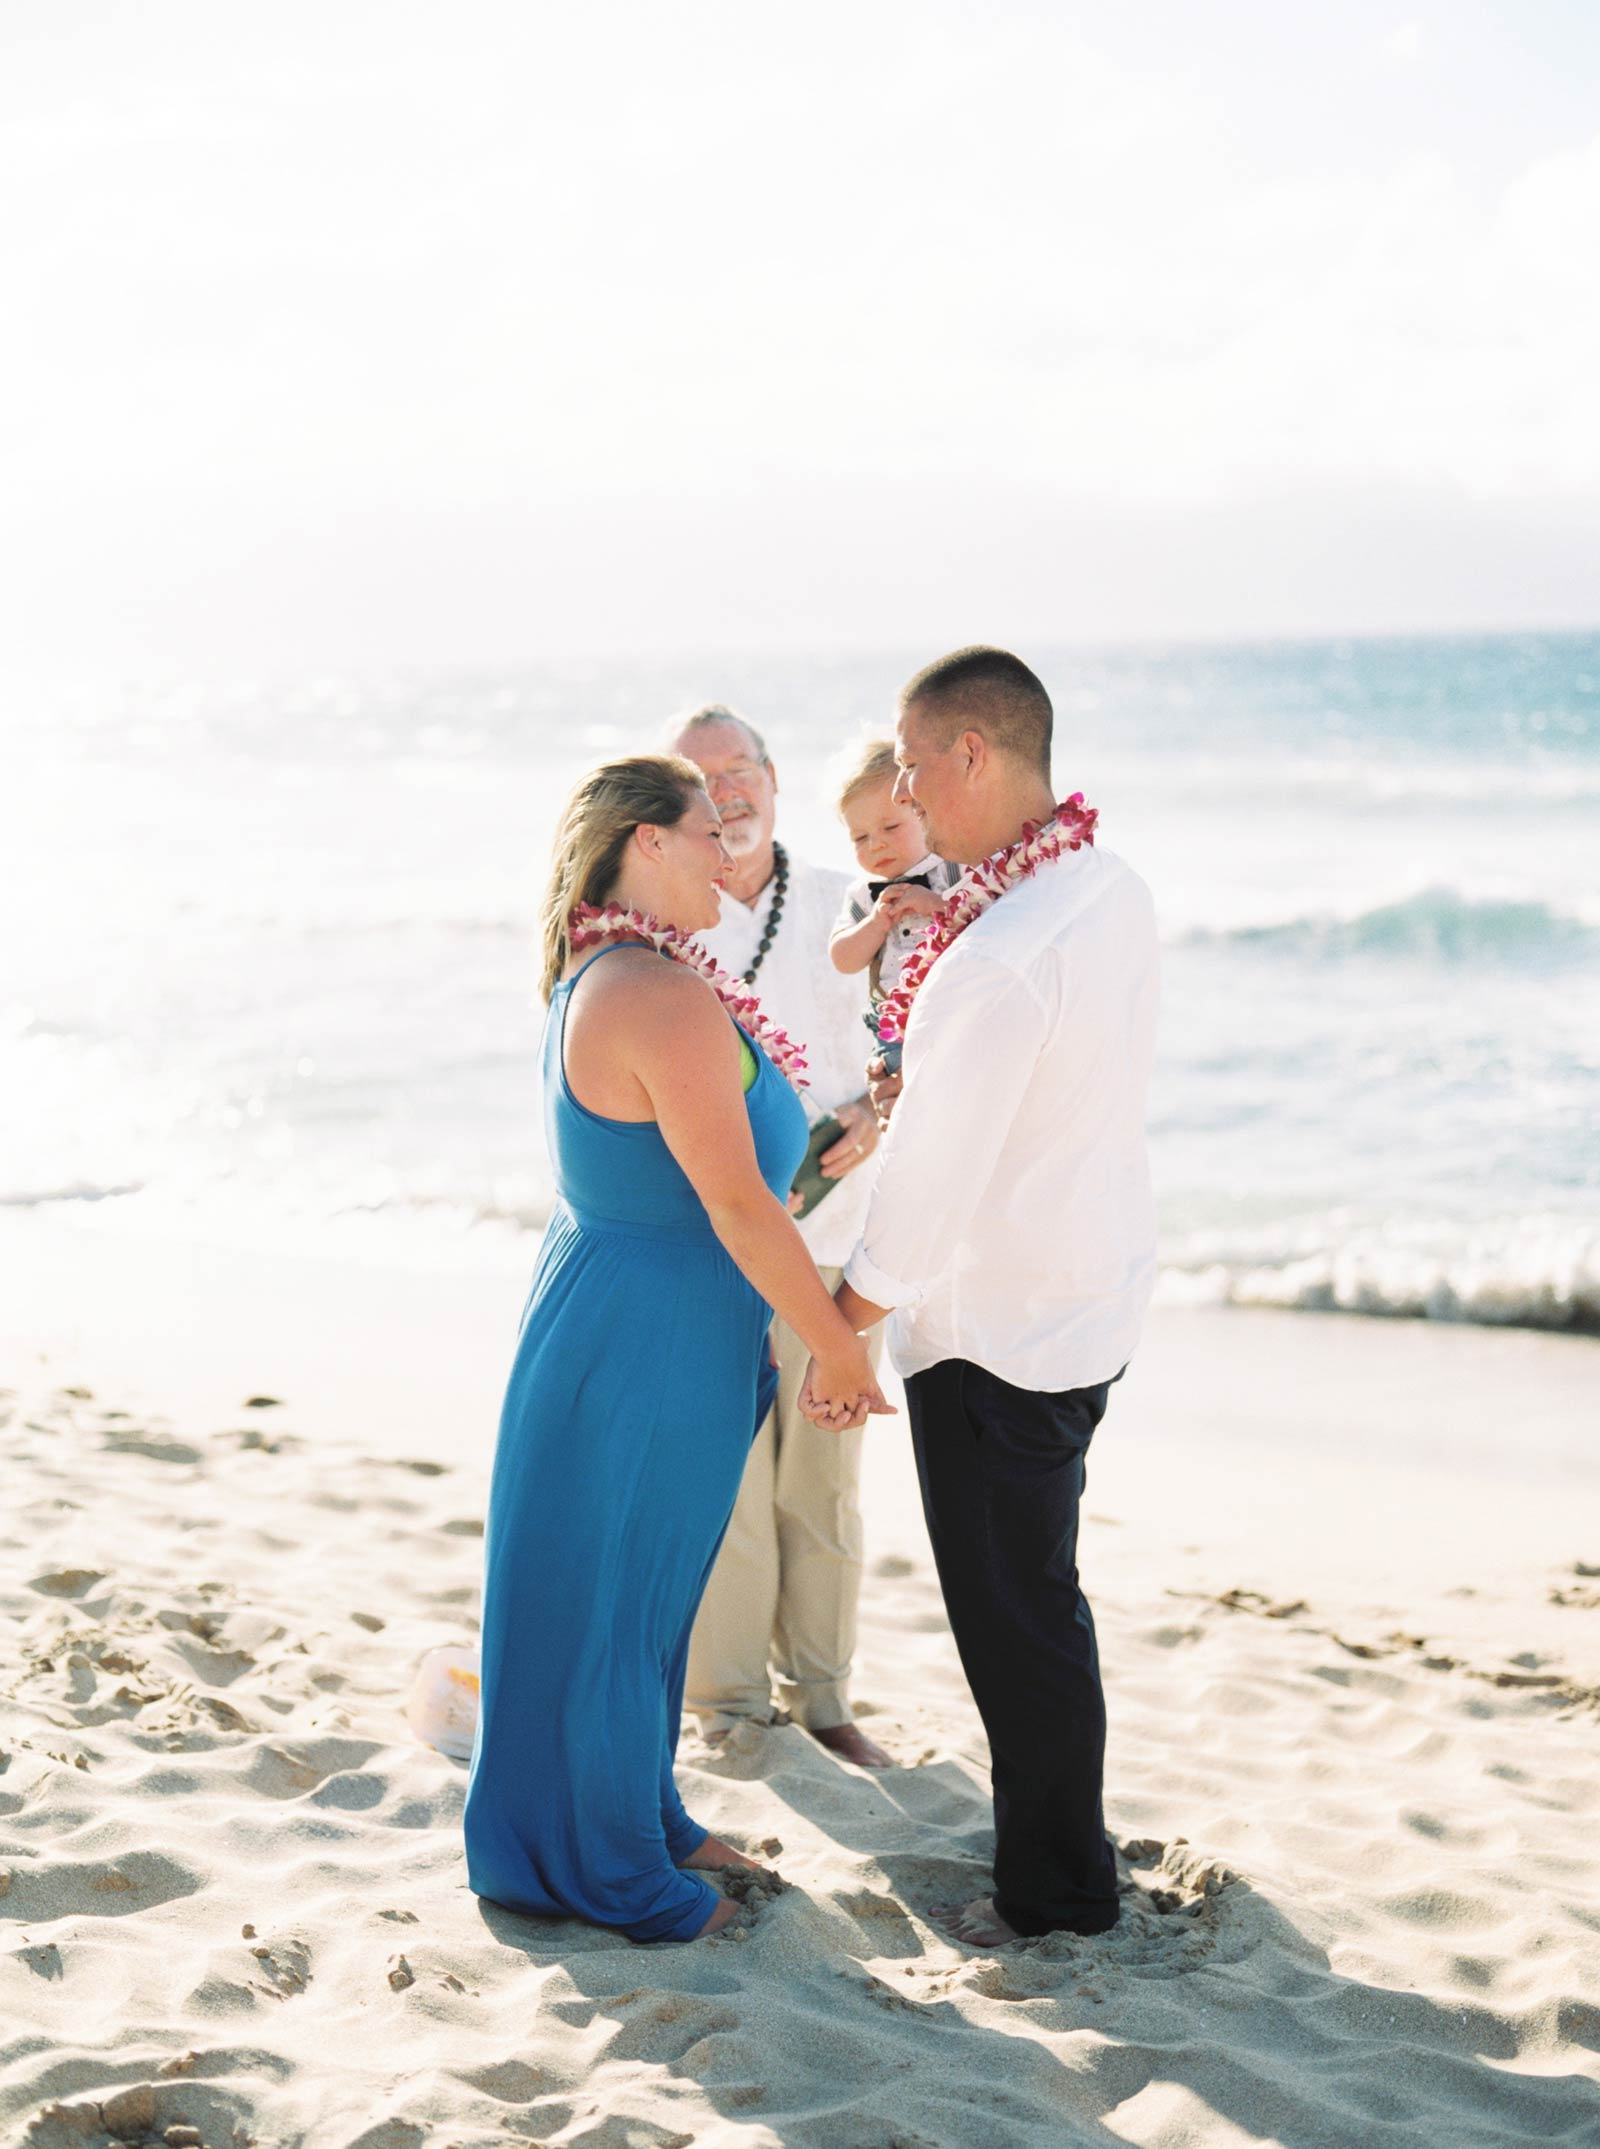 Maui-vow-renewal-family-photos-009.jpg